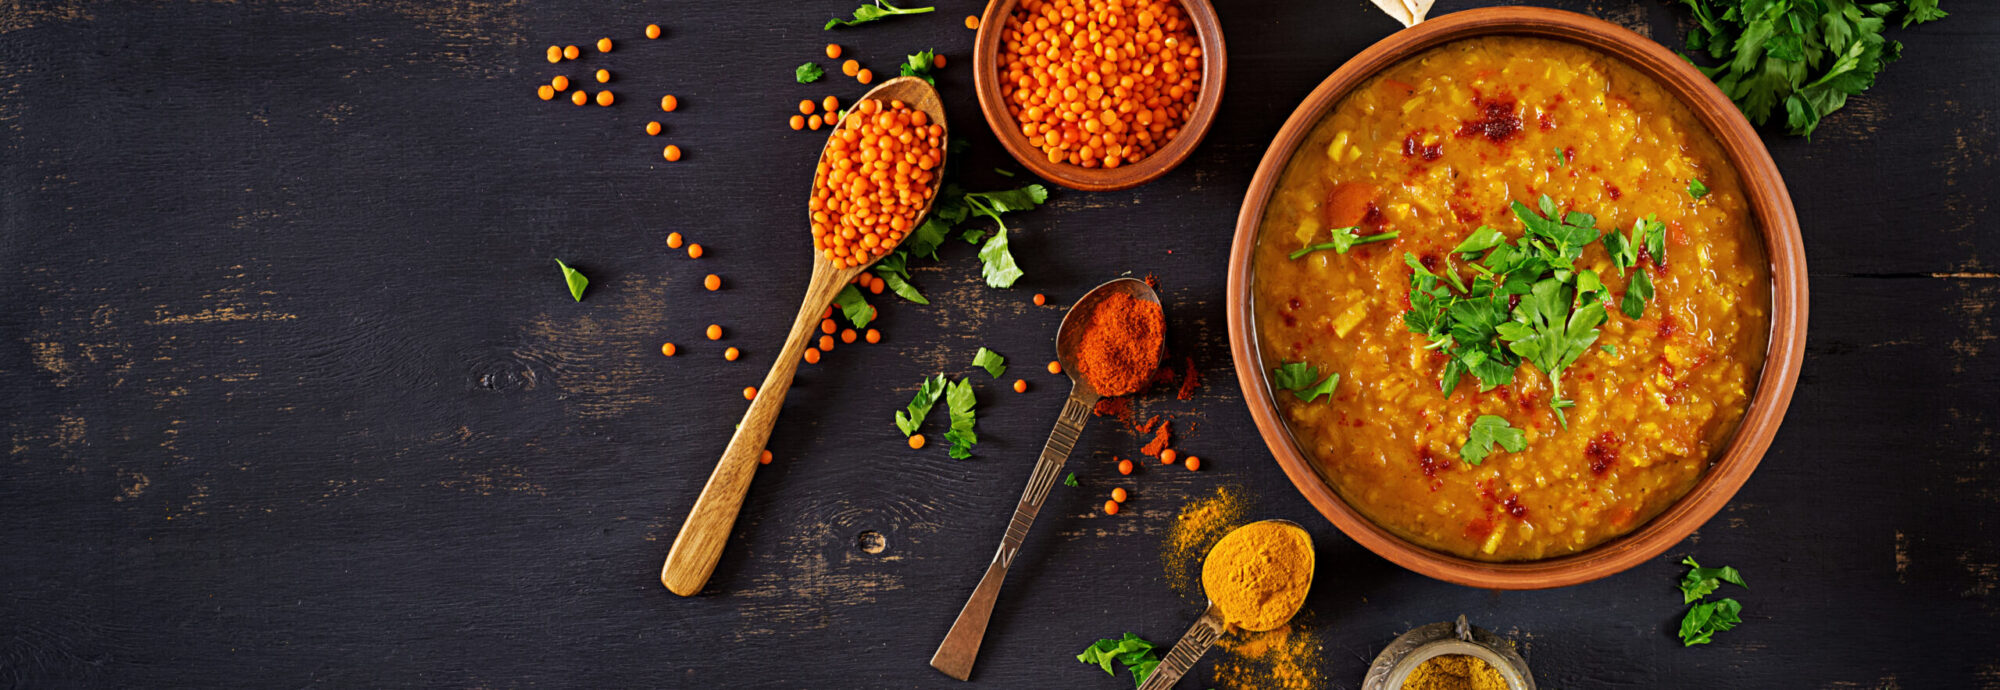 wholesome dal recipe - eco friendly plant based cooking recipe from my home to you